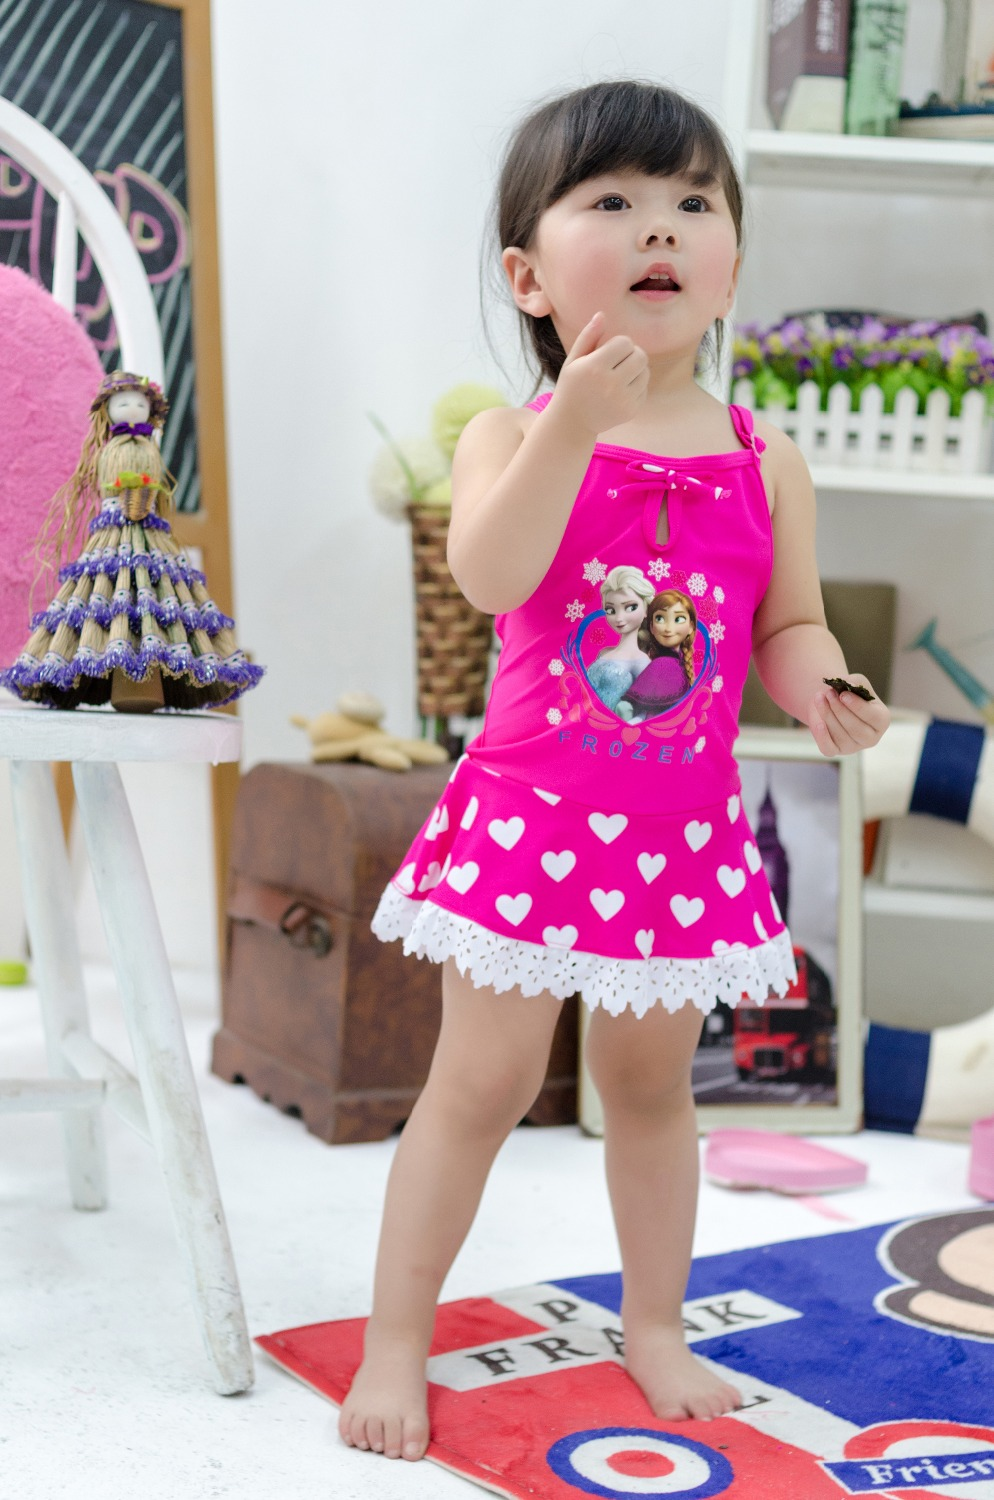 2016 summer  new arrival  hot pink heart-shaped sleeveless one piece swimwear for kids swimsurt   SW184 10pcs/lot DHL free